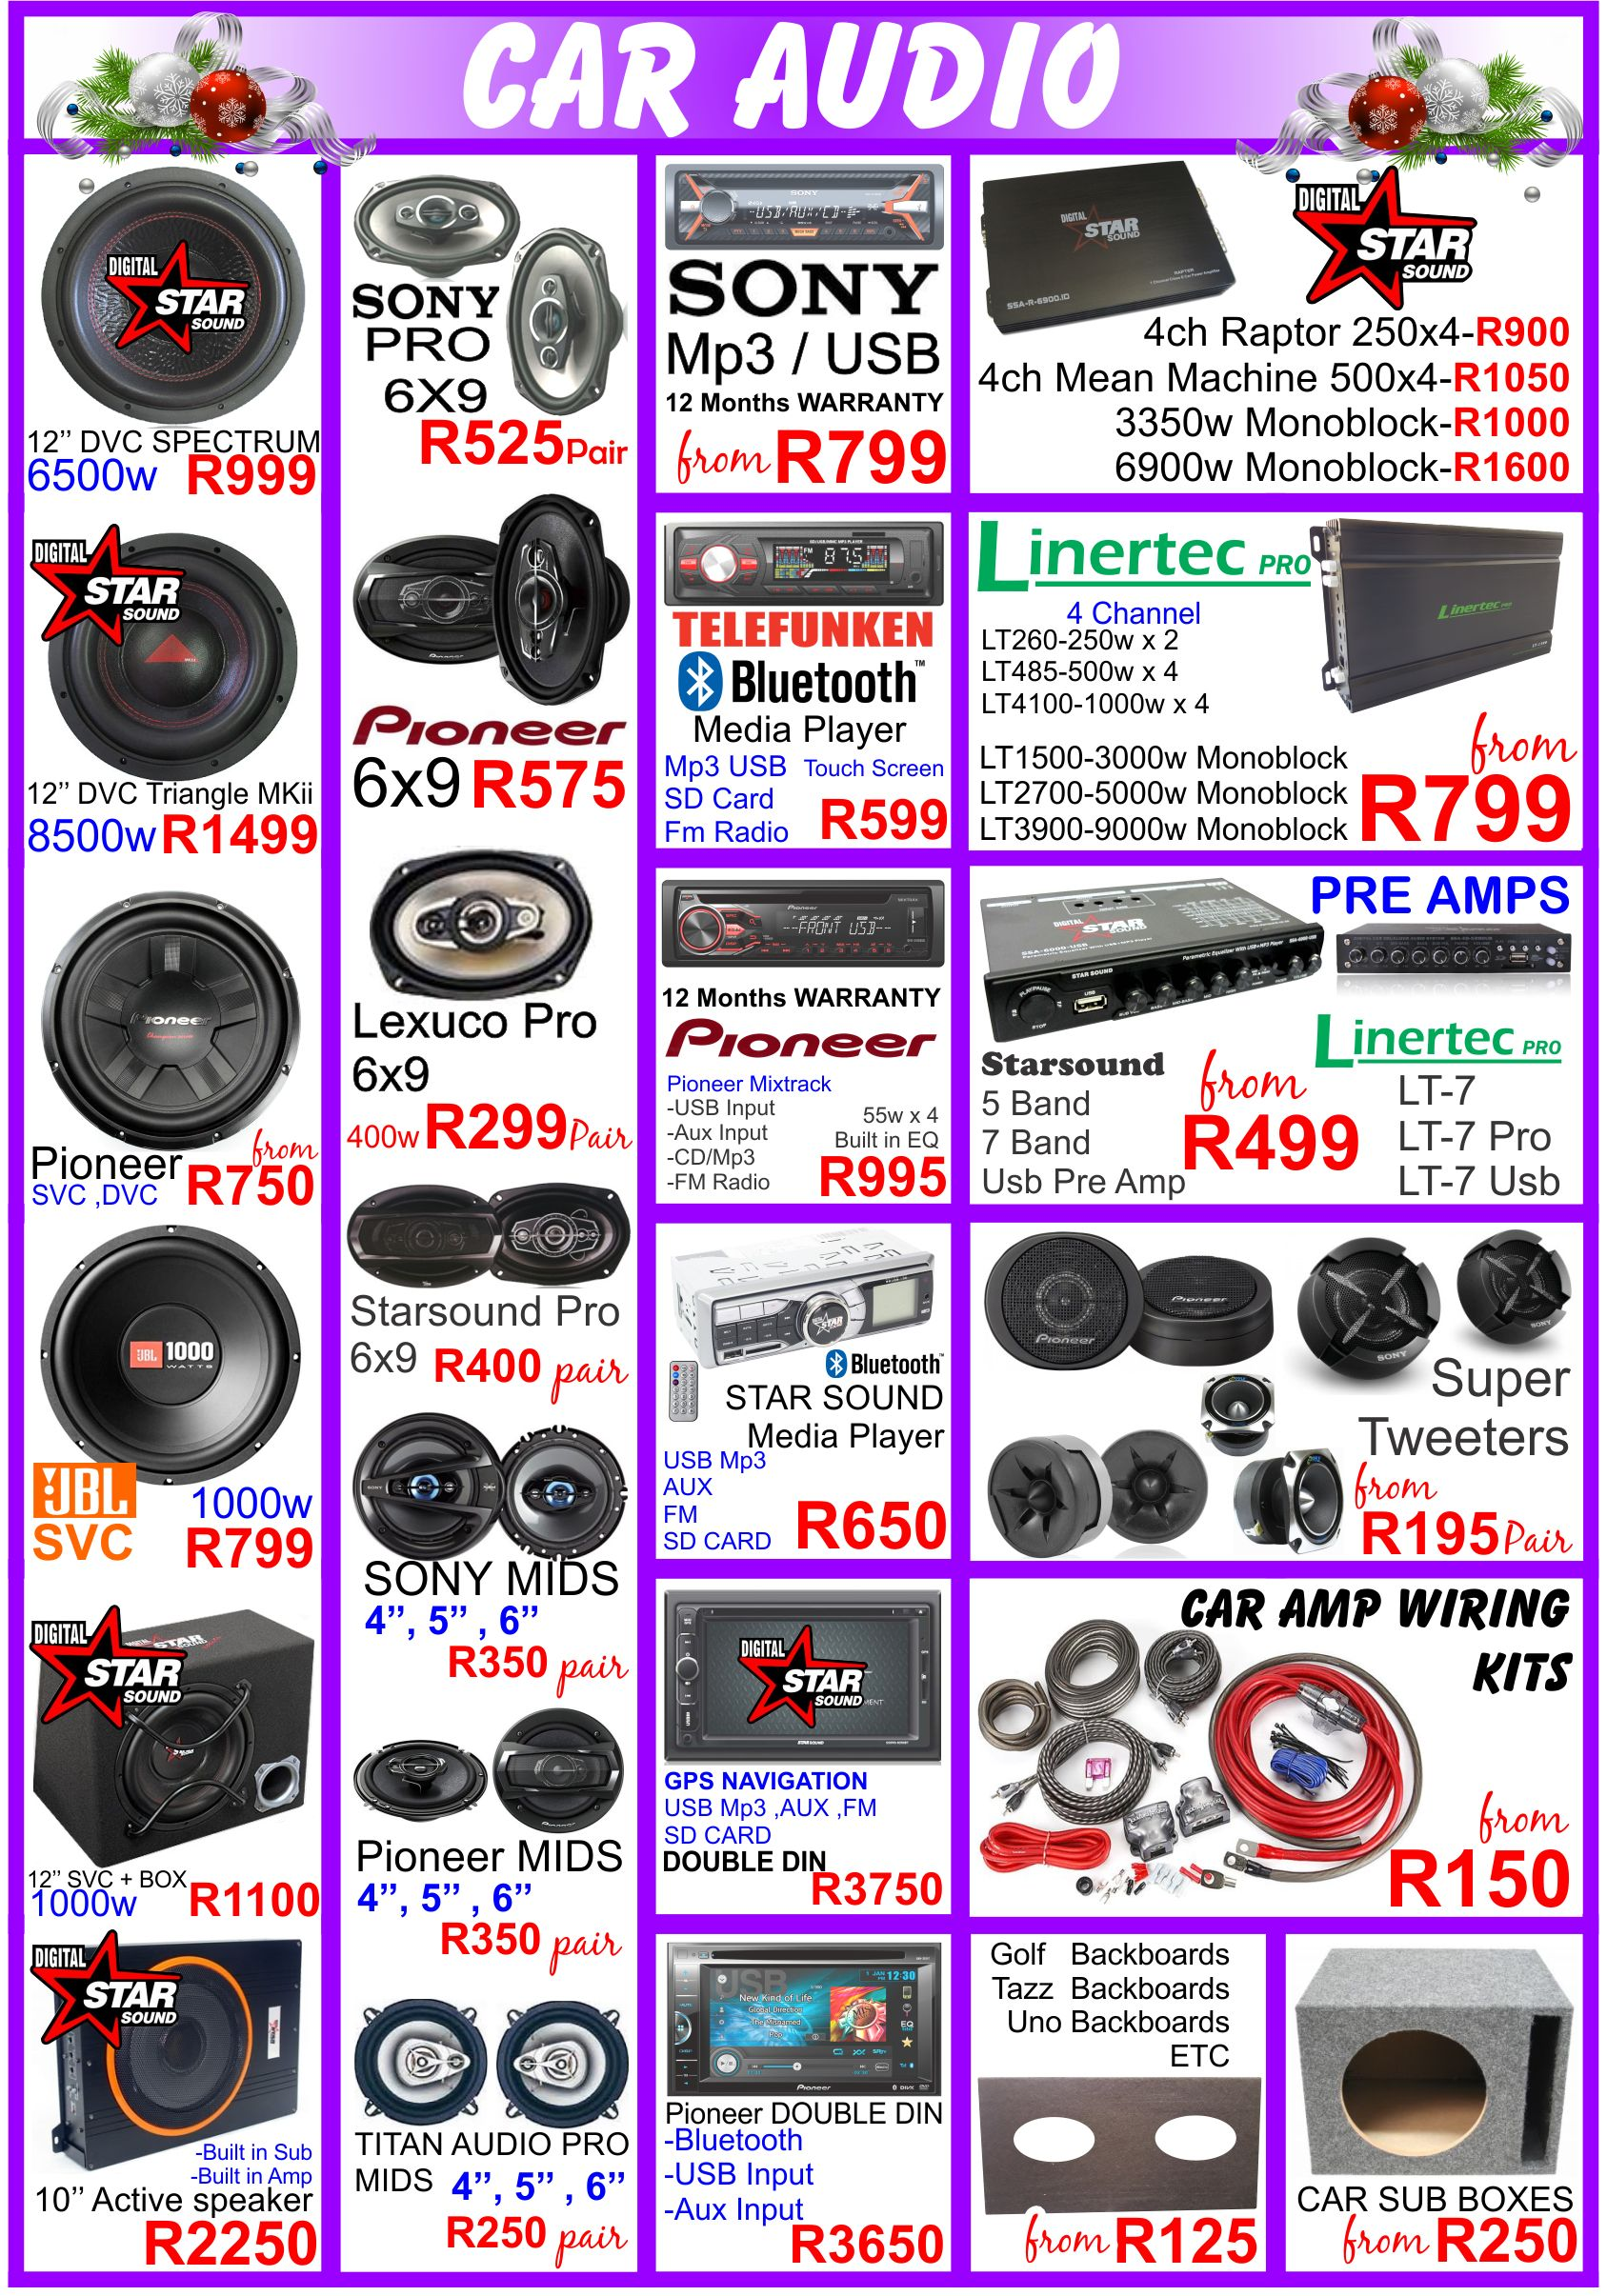 MUILTIMEDIA ANDROID TV BOX SONY USB PIONEER USB CALRIBRA PEAVY DISCO SOUND 18INCH SCOOP 1810 BASS BIN GRAVITY SOUND DJ AND LIGHTING 0315072463 sony shake bluetooth combo hifi combo portable speaker battery speaker home theater system durban